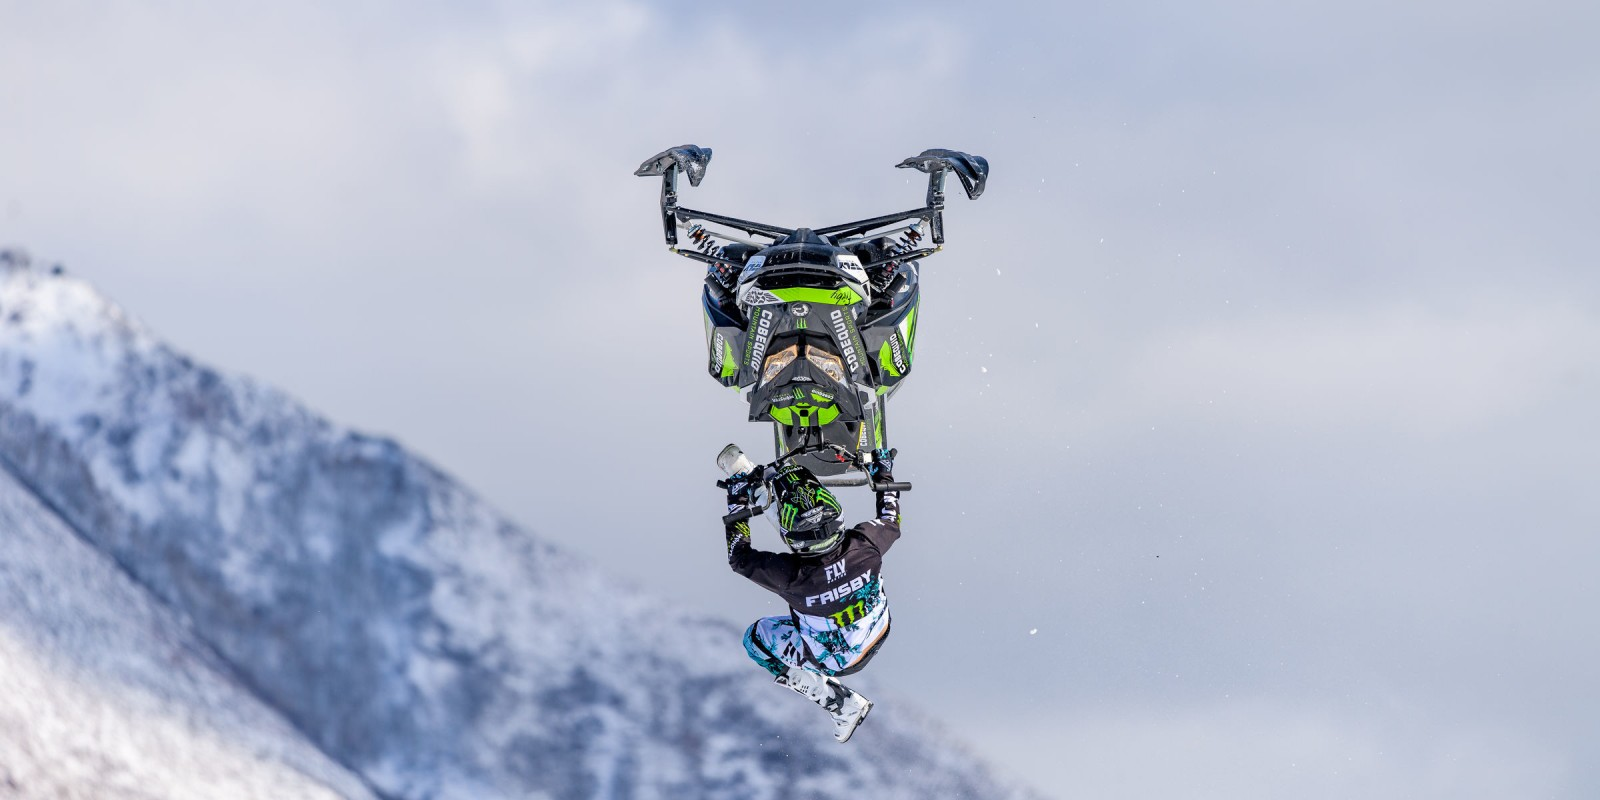 Heath Frisby competing in the 2019 Winter X Games